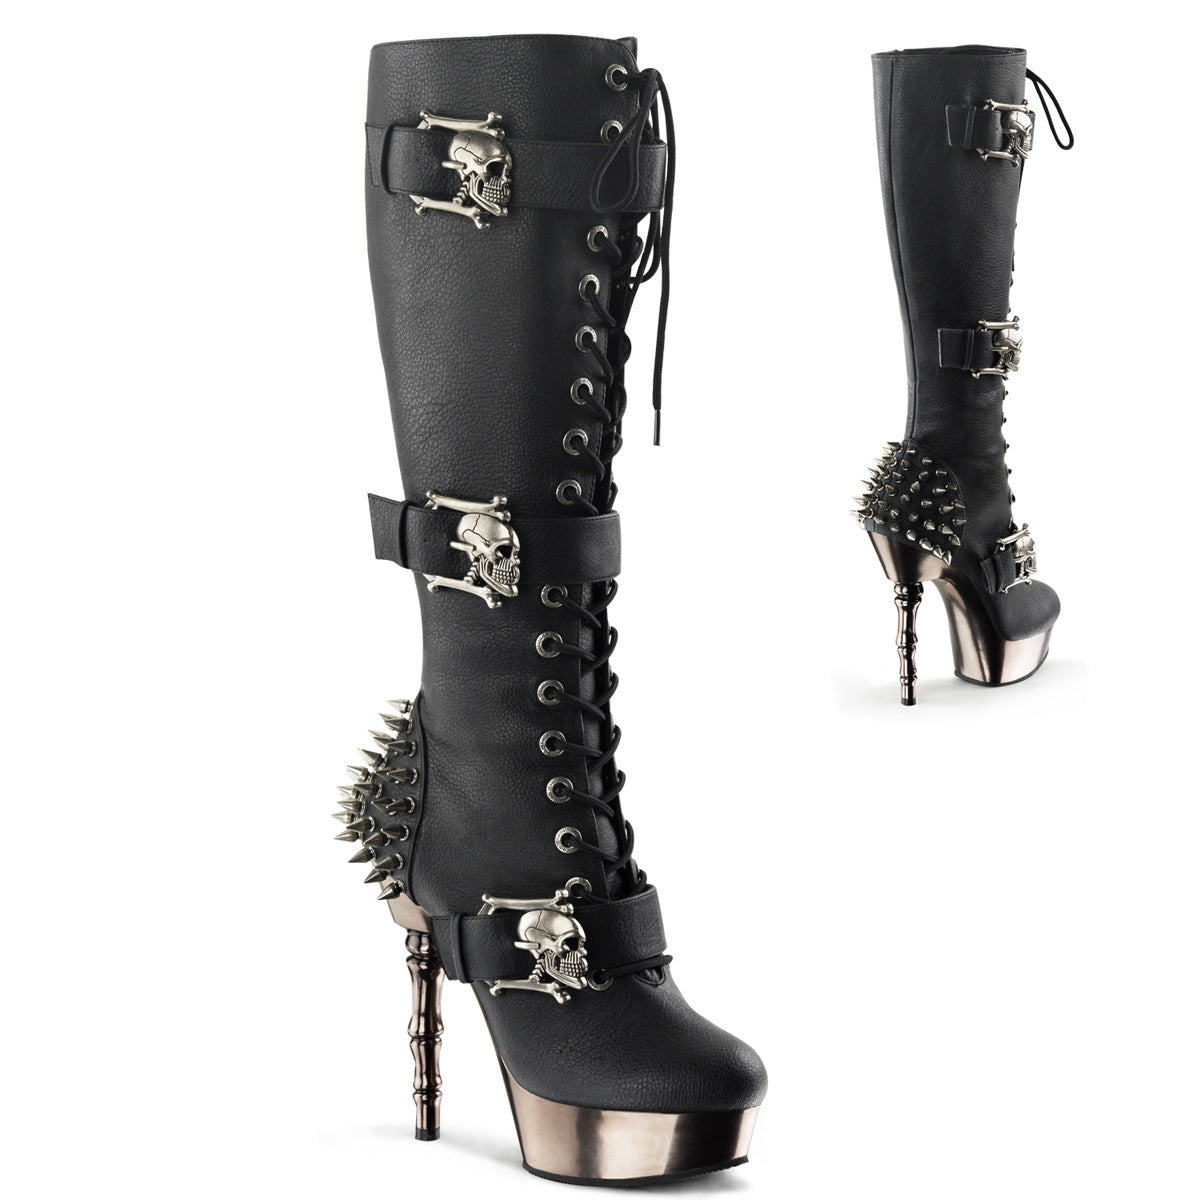 "5 1/2"" Finger Bone Heel, 1 1/2"" PF Lace Up Knee High Boot"